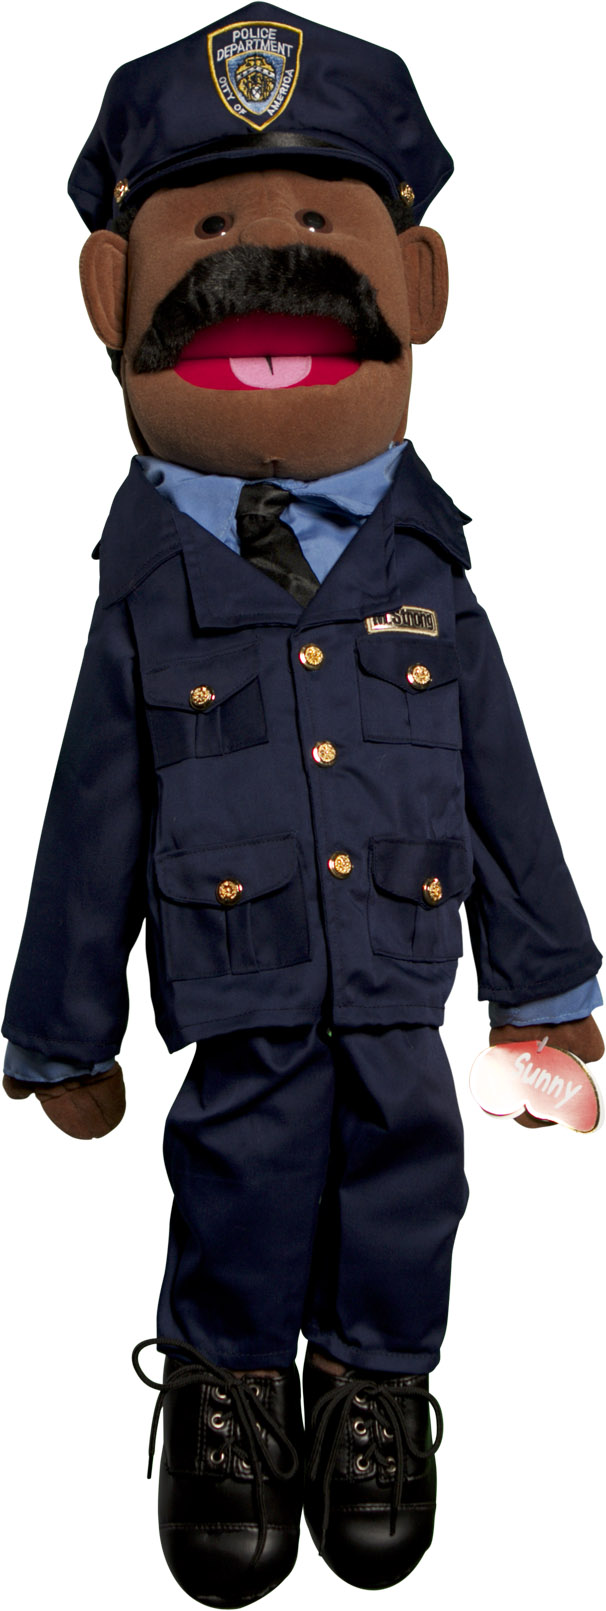 Sunny Toys GS4308B 28 In. Ethnic Dad Policeman, Full Body Puppet by Sunny Toys